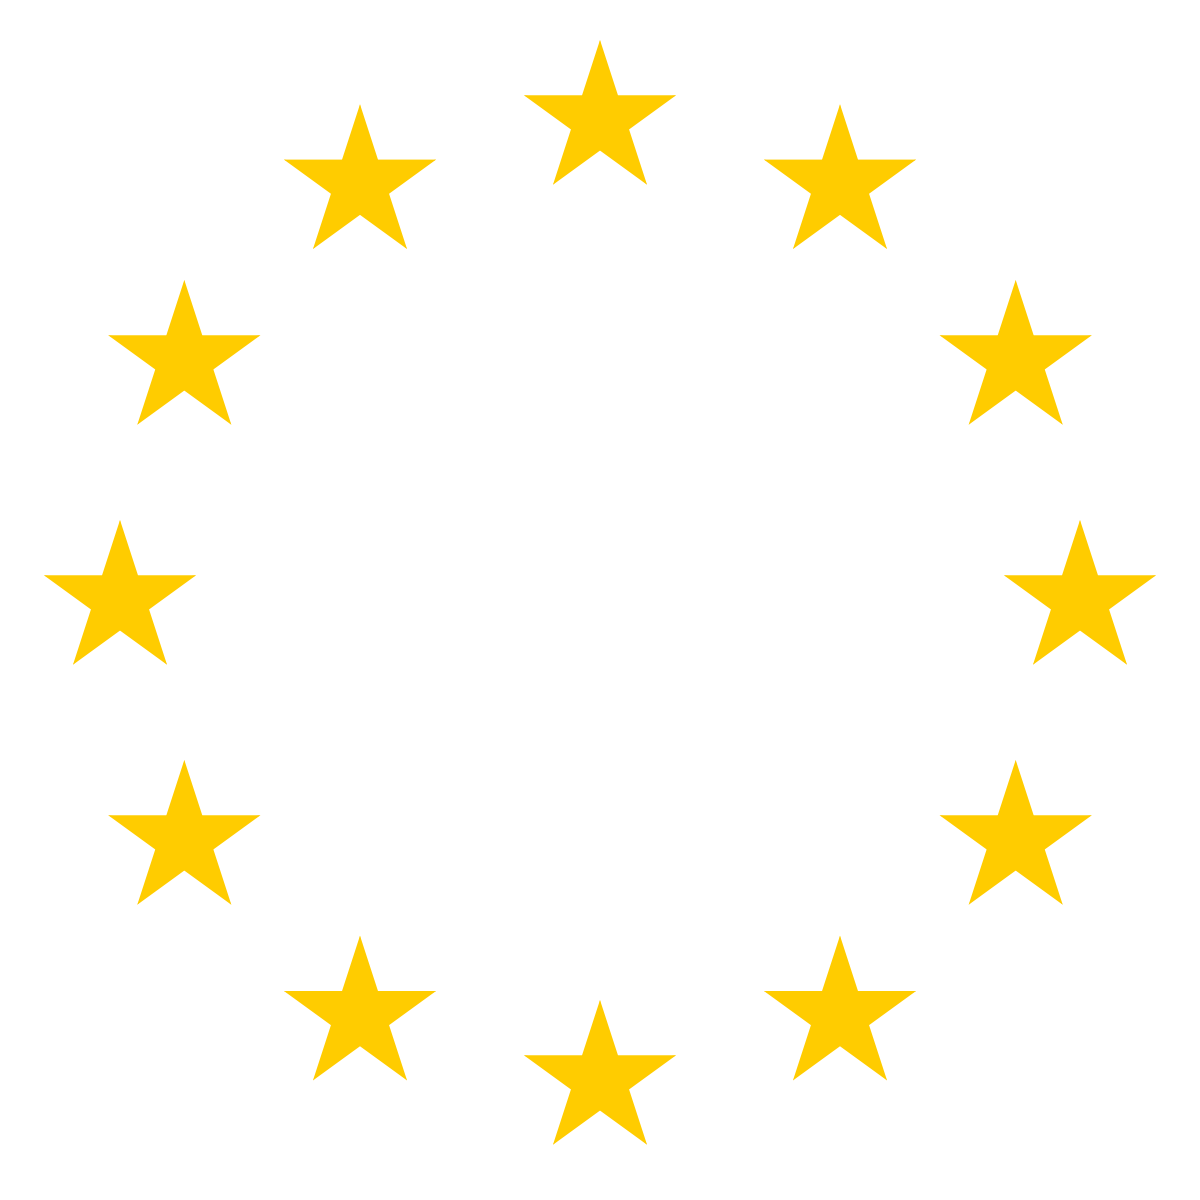 1200x1200 Europe Clipart European Union